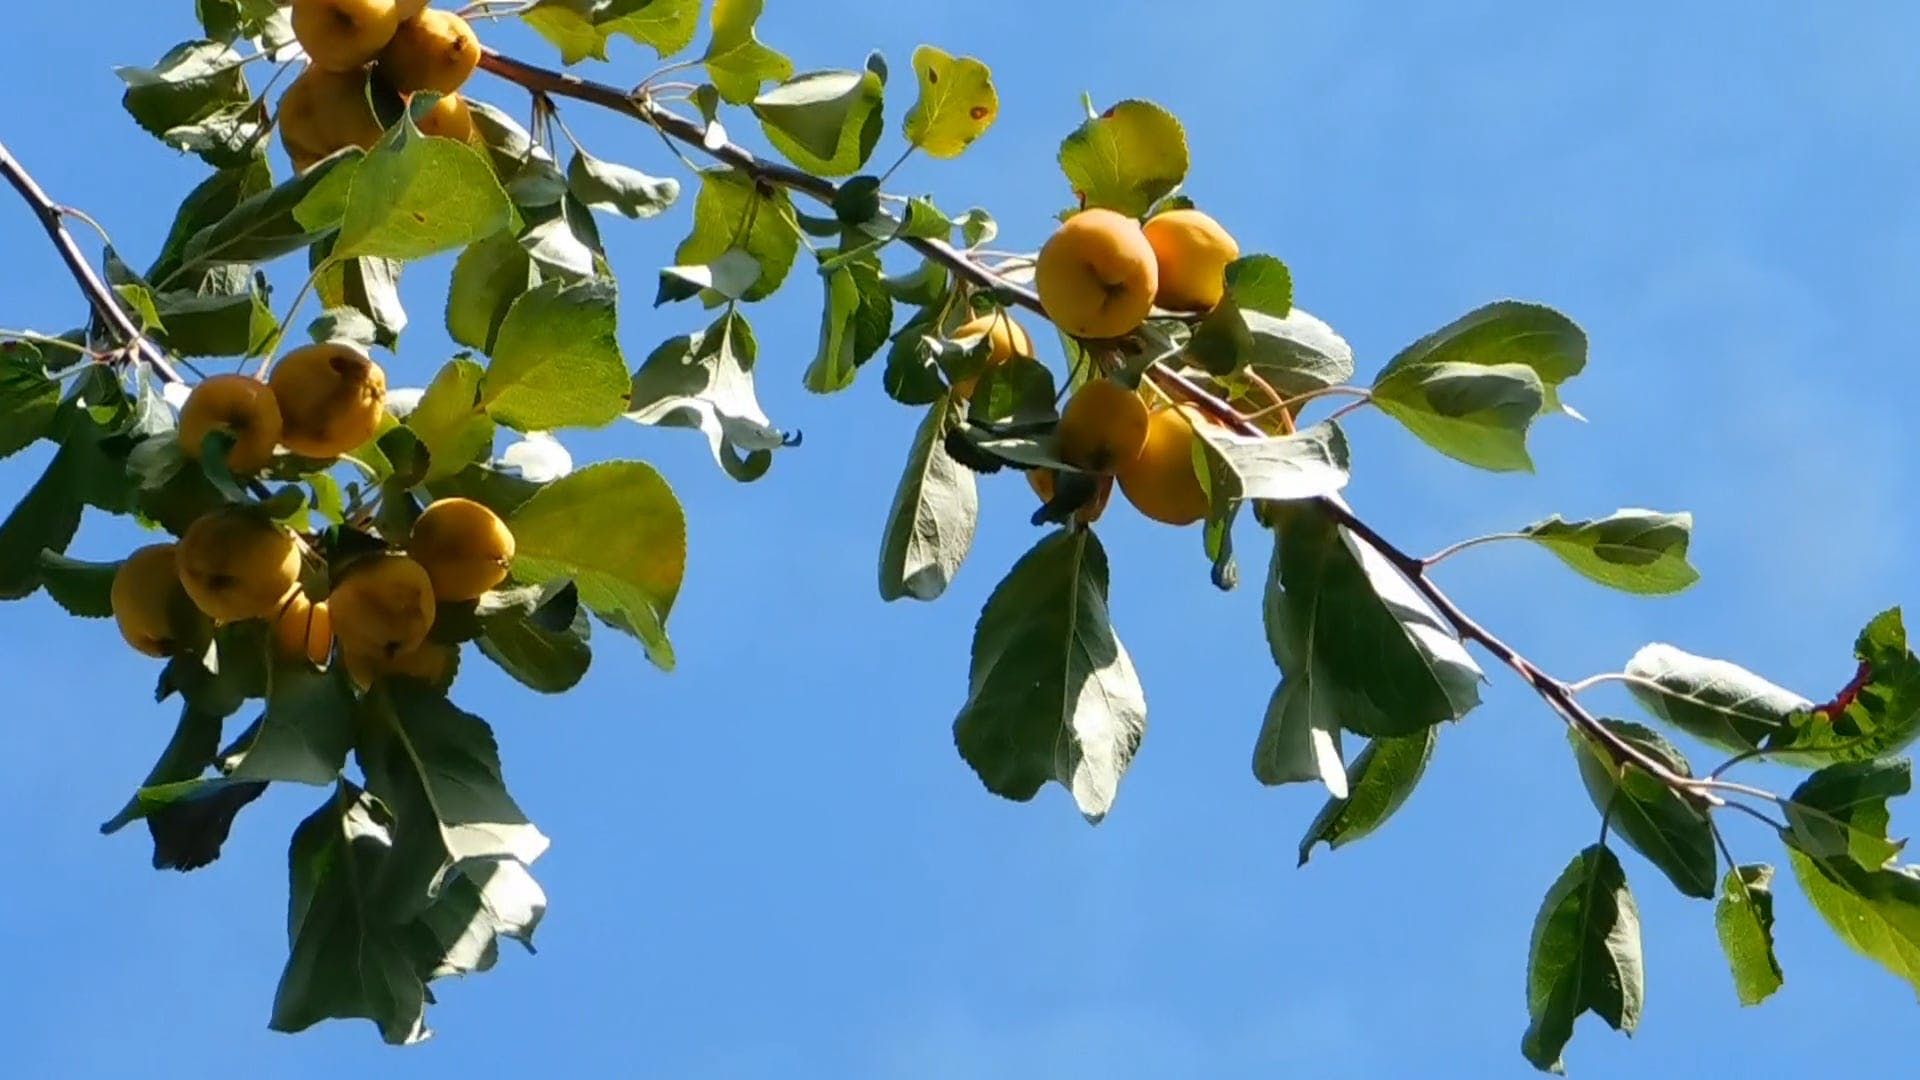 Yellow Fruits On A Tree Branch